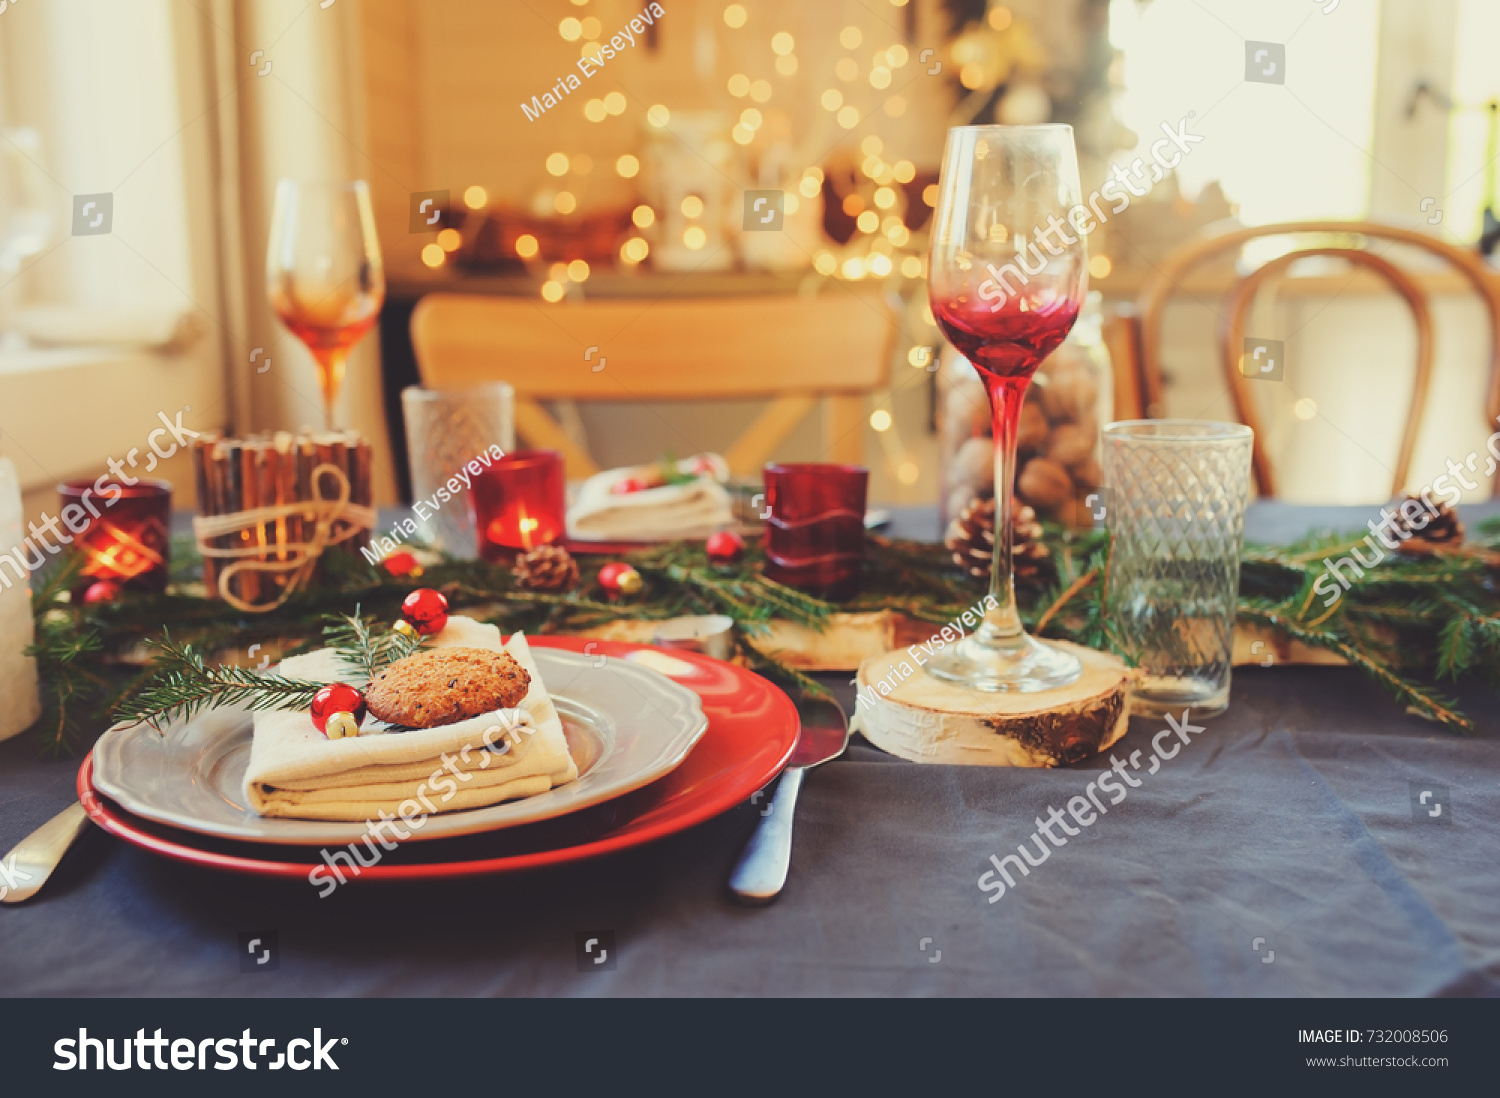 Festive table for the New Year of 2019 Pigs 91